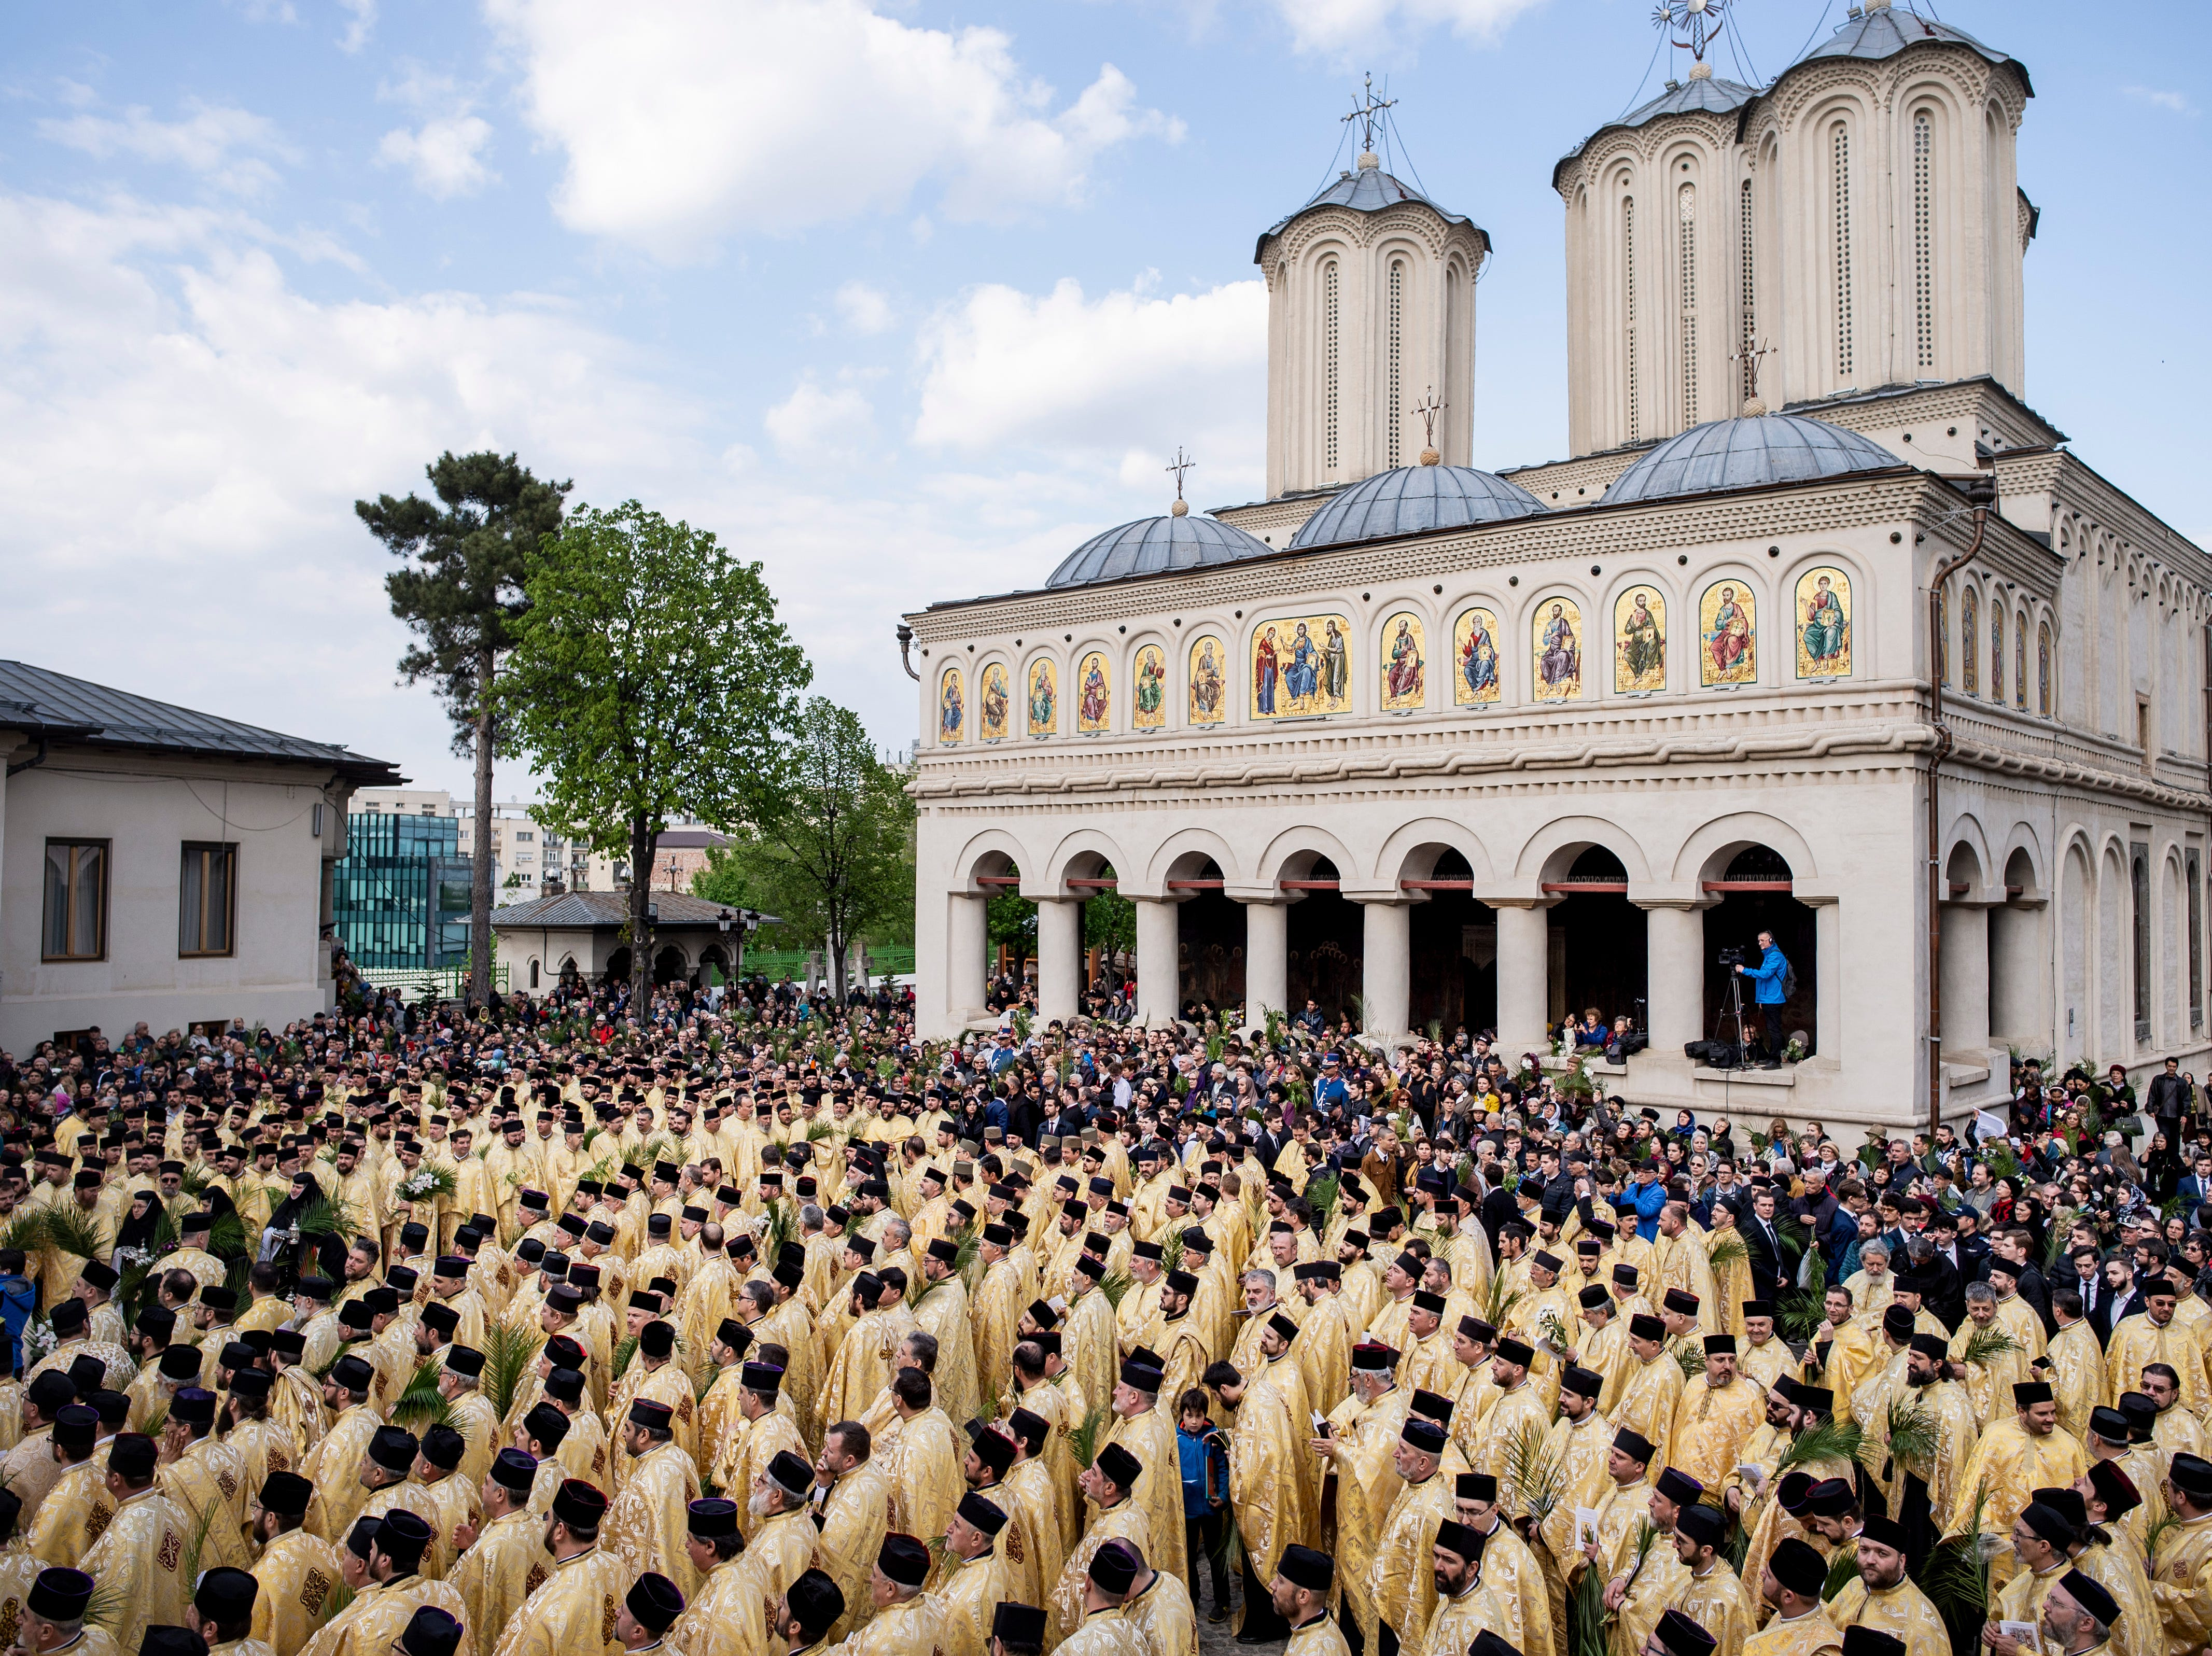 Romanian Orthodox priests and belivers stand outside the Patriarchal Cathedral after an Orthodox Palm Sunday pilgrimage in Bucharest, Romania, Saturday, April 20, 2019. According to local media hundreds of priests and thousands of Orthodox worshippers marched through the Romanian capital and major cities ahead of Palm Sunday.